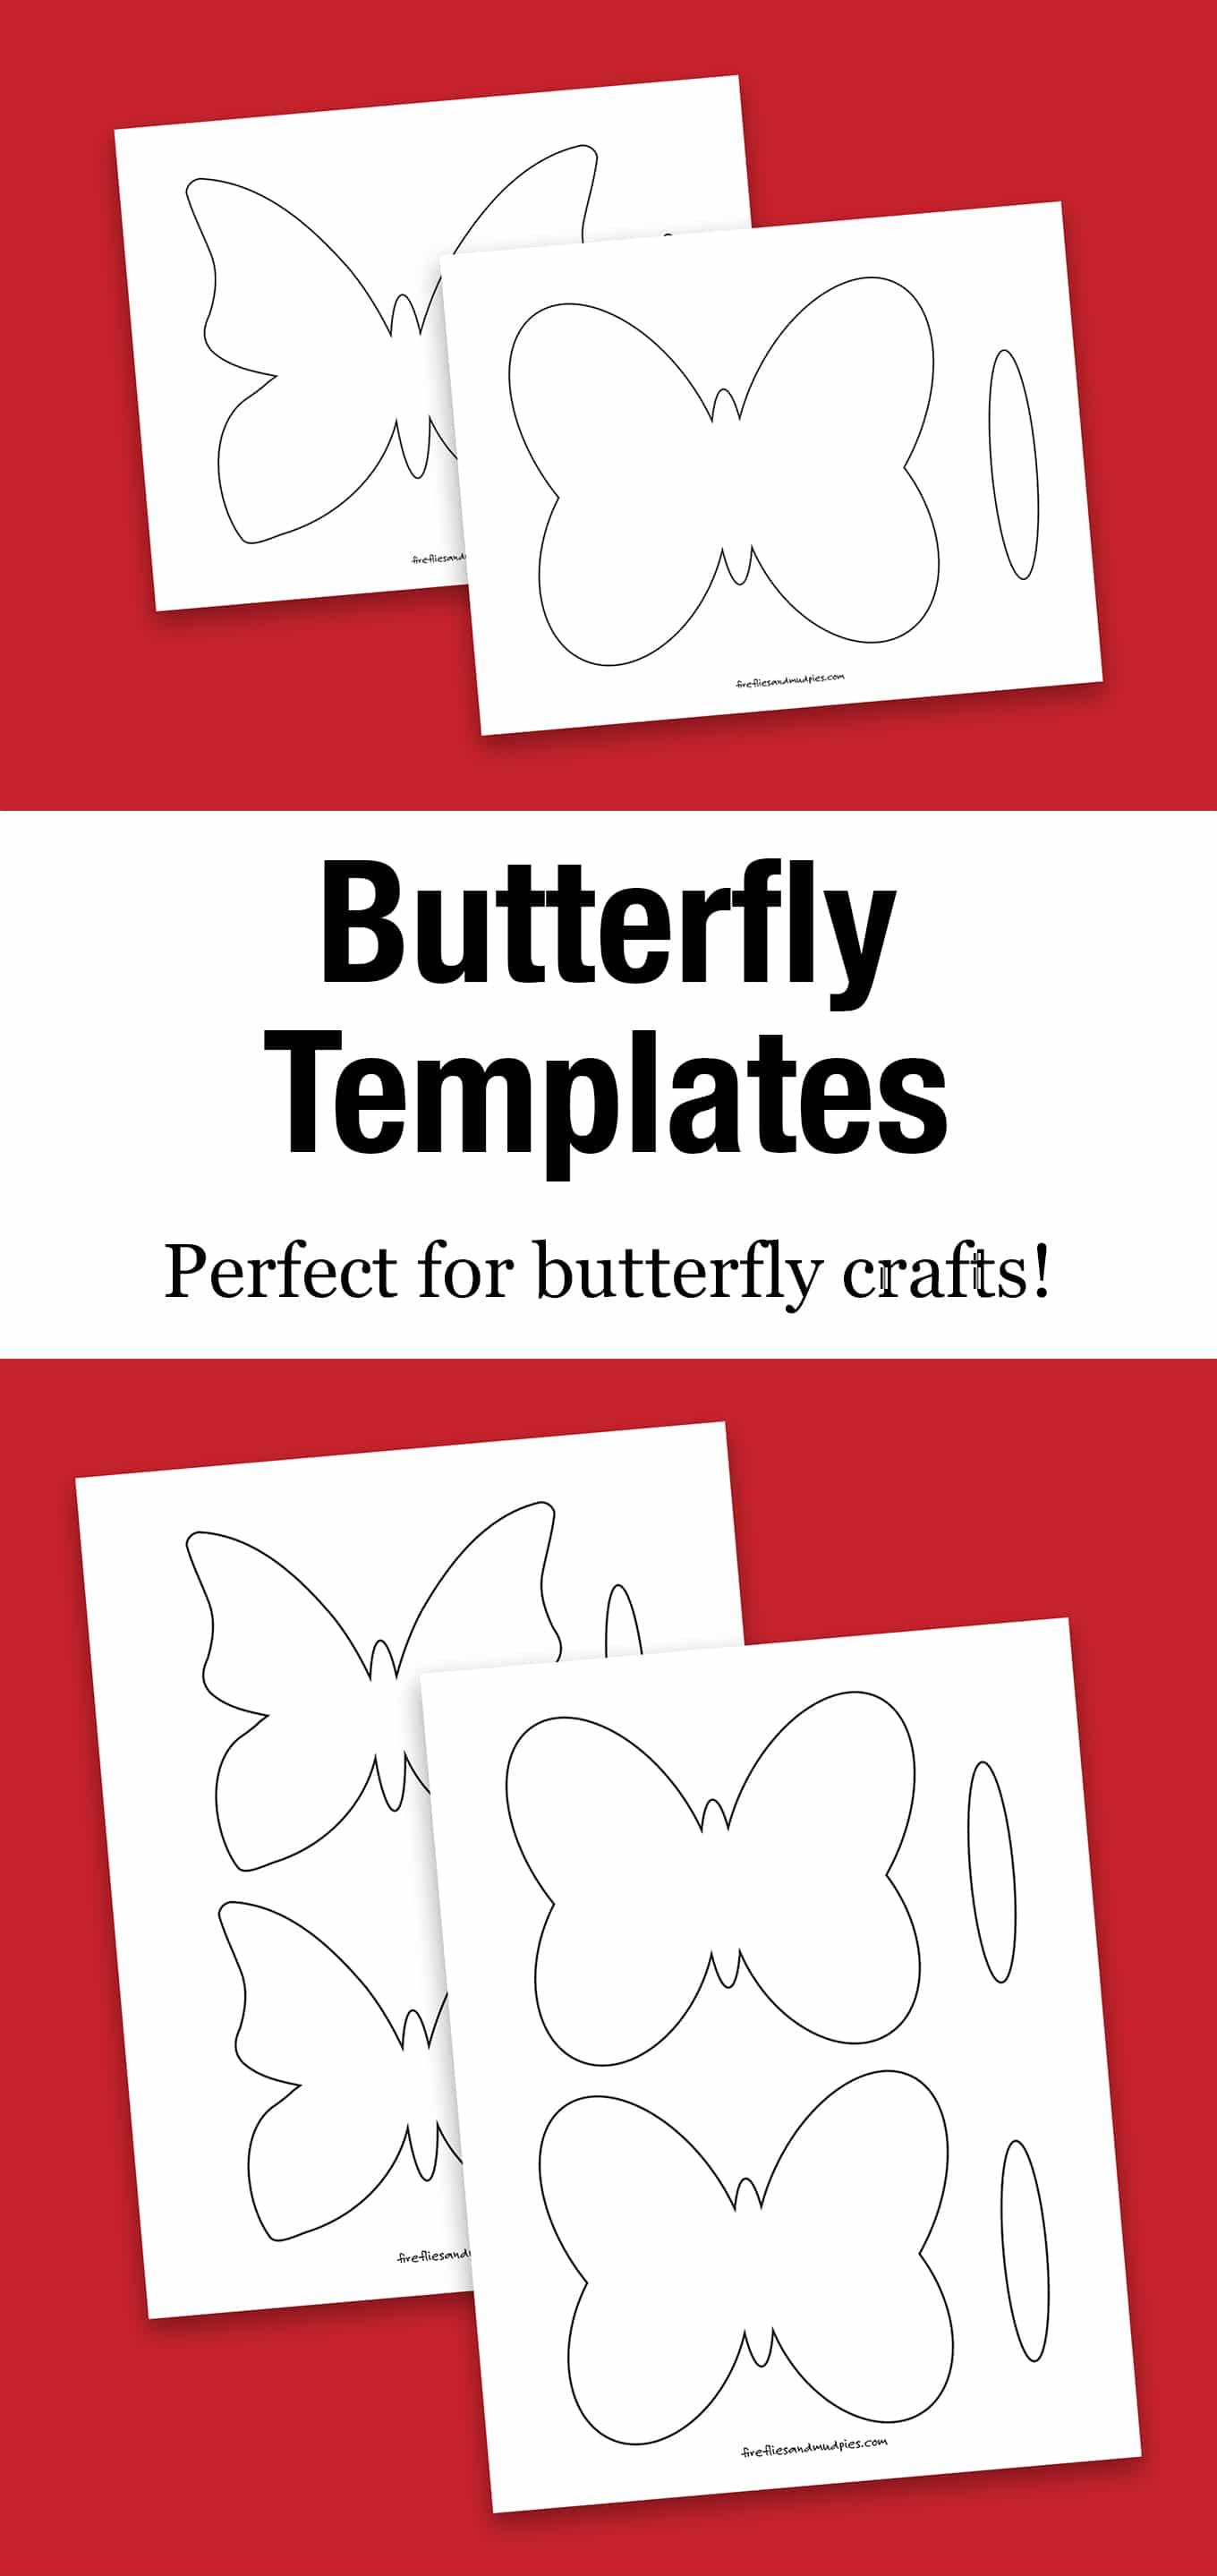 Our free printable butterfly template is perfect for butterfly crafts including suncatchers, simple paper crafts, painting, and more!#butterflytemplate #freeprintable #butterflycraft #suncatchersforkids #butterflysuncatcher via @firefliesandmudpies